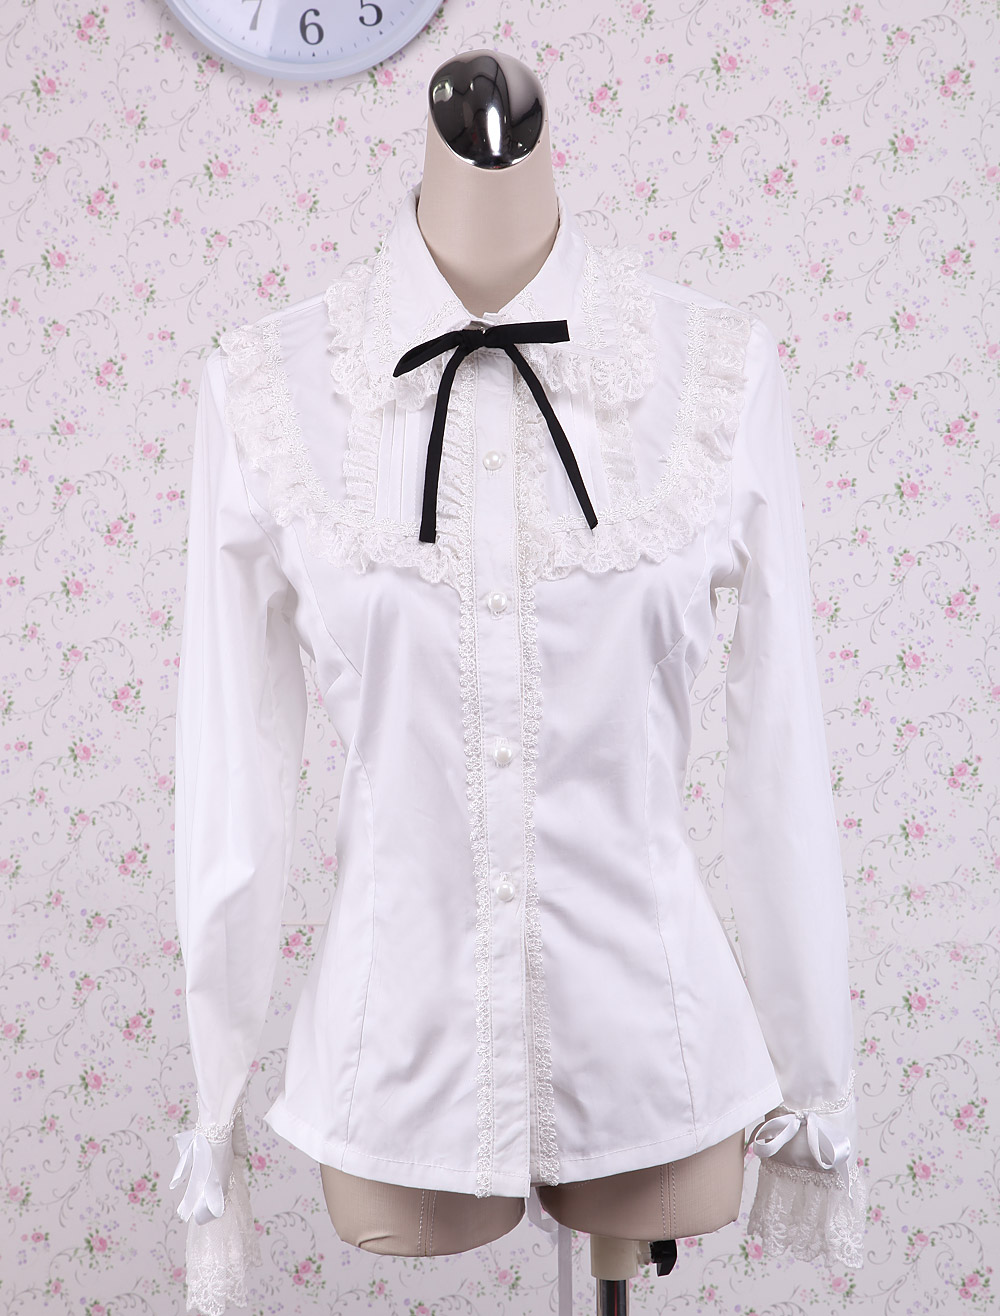 Buy White Cotton Lolita Blouse Long Sleeves Lace Trim Turn-down Collar Black Bow for $43.99 in Milanoo store